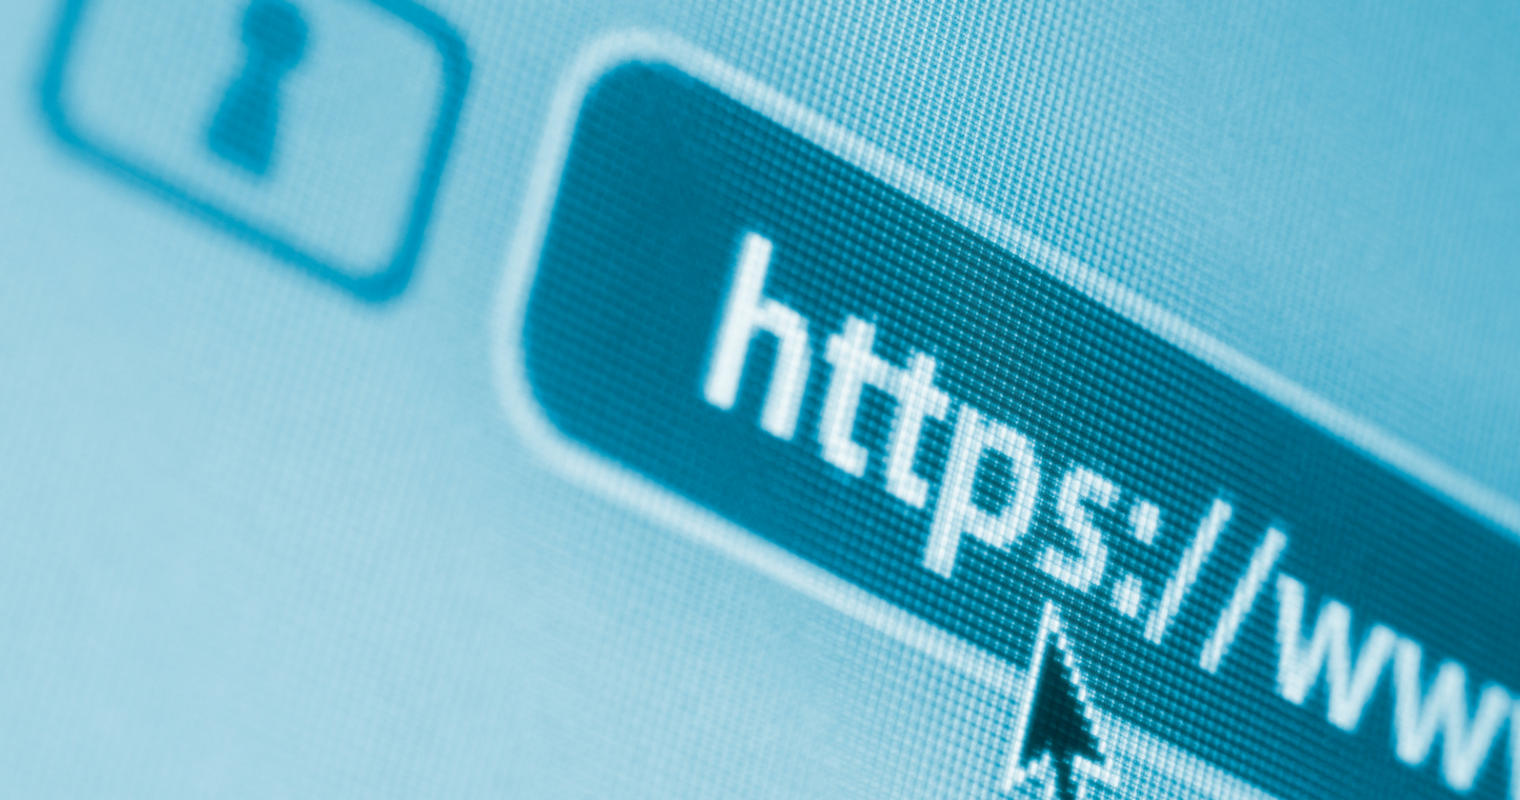 HTTPS Pages on Front Page of Google Could Reach 50% by June 2017